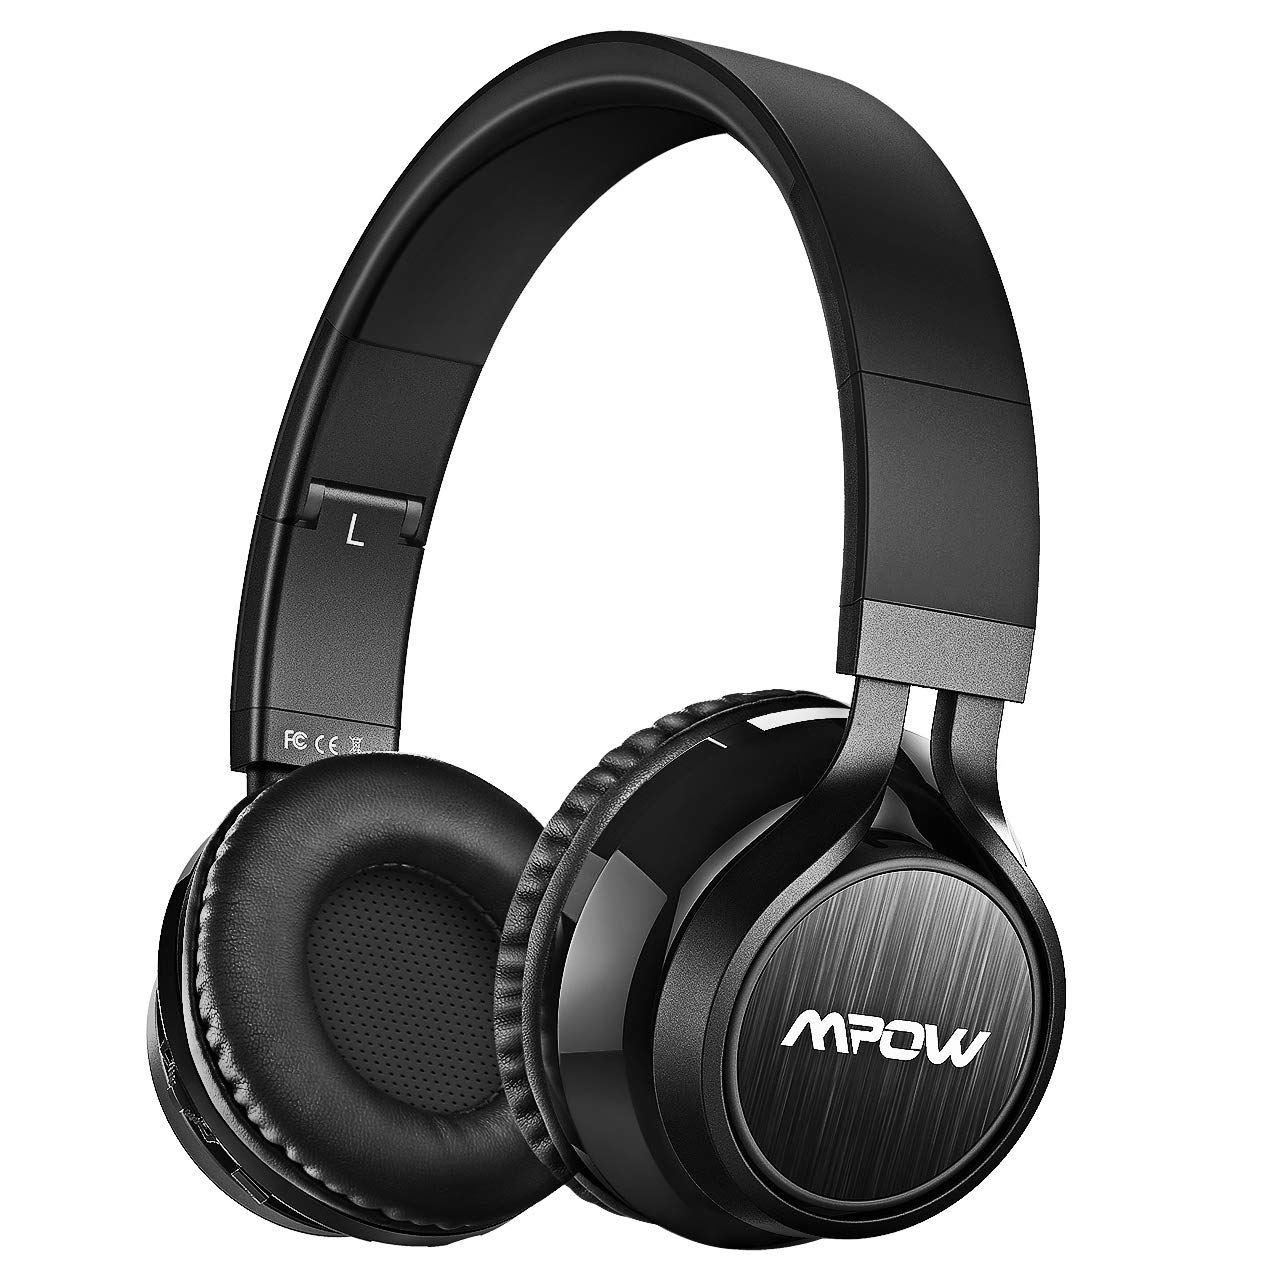 Mpow Thor Bluetooth Headphones On Ear, Hi-Fi Stereo Wireless Headset Foldable with Mic, Lightweight Comfortable Protein Earpads, Wired Wireless Mode Bluetooth Headphones for Cellphone TV PC